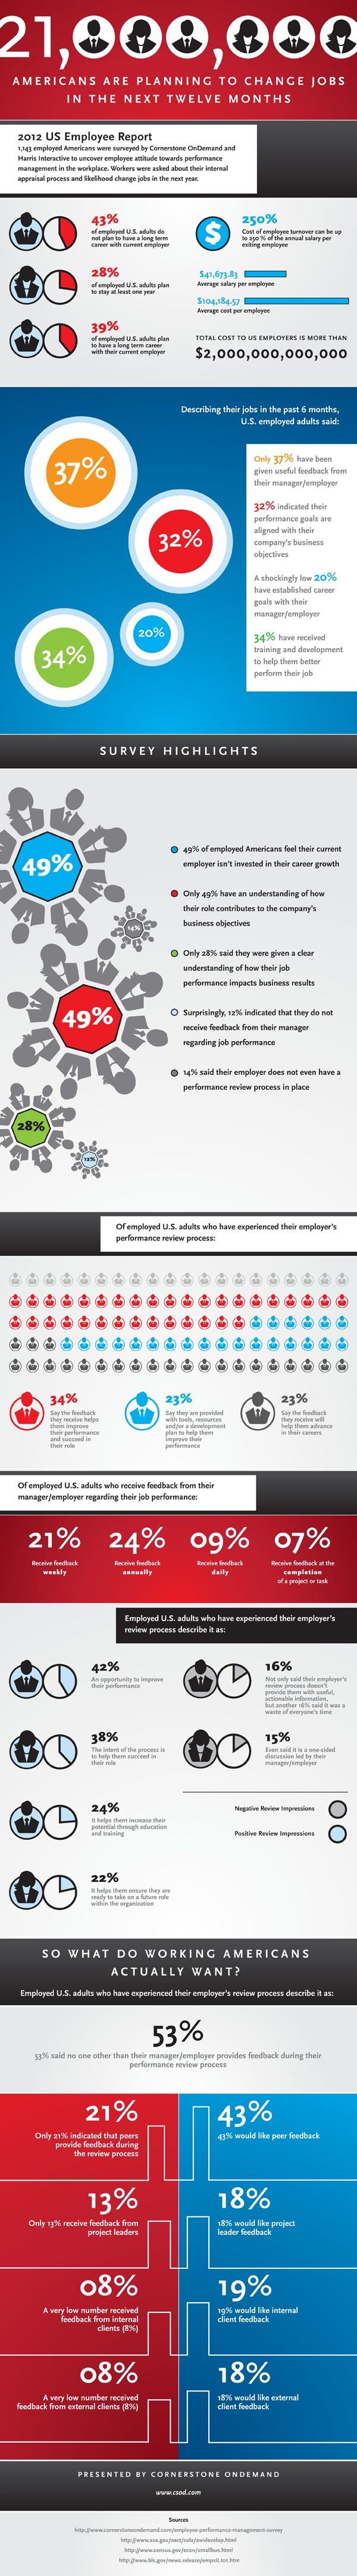 best images about time for a career change 21 million americans to quit jobs in 2012 infographic